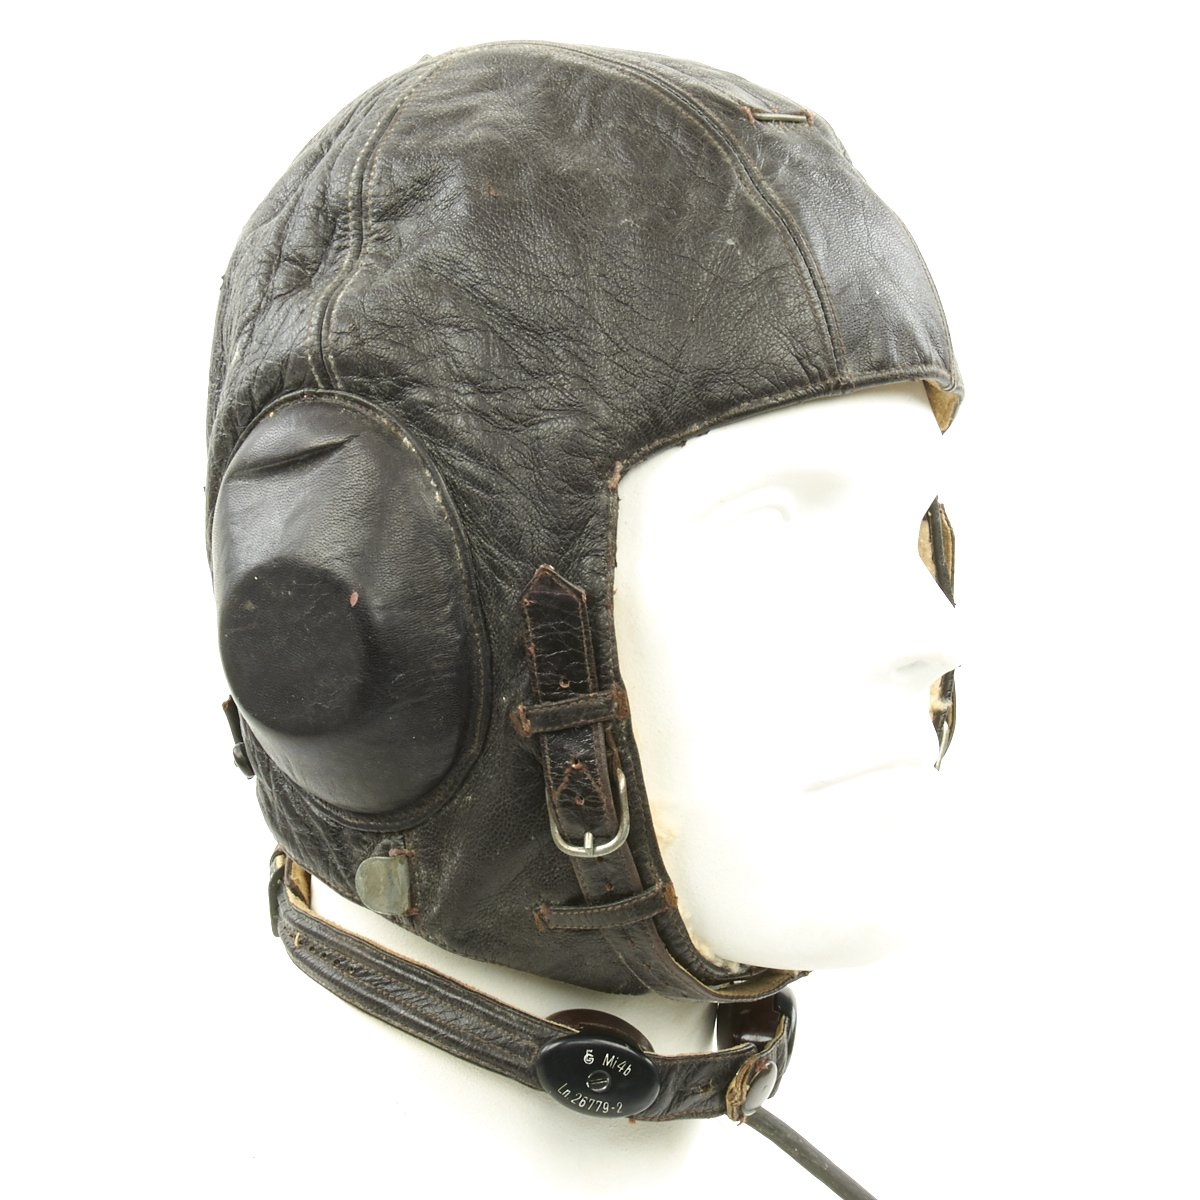 10acb6f7912 Tap to expand · Next · Original German WWII Luftwaffe Model LKPW101 Leather  Flying Helmet with Receiver and Microphone